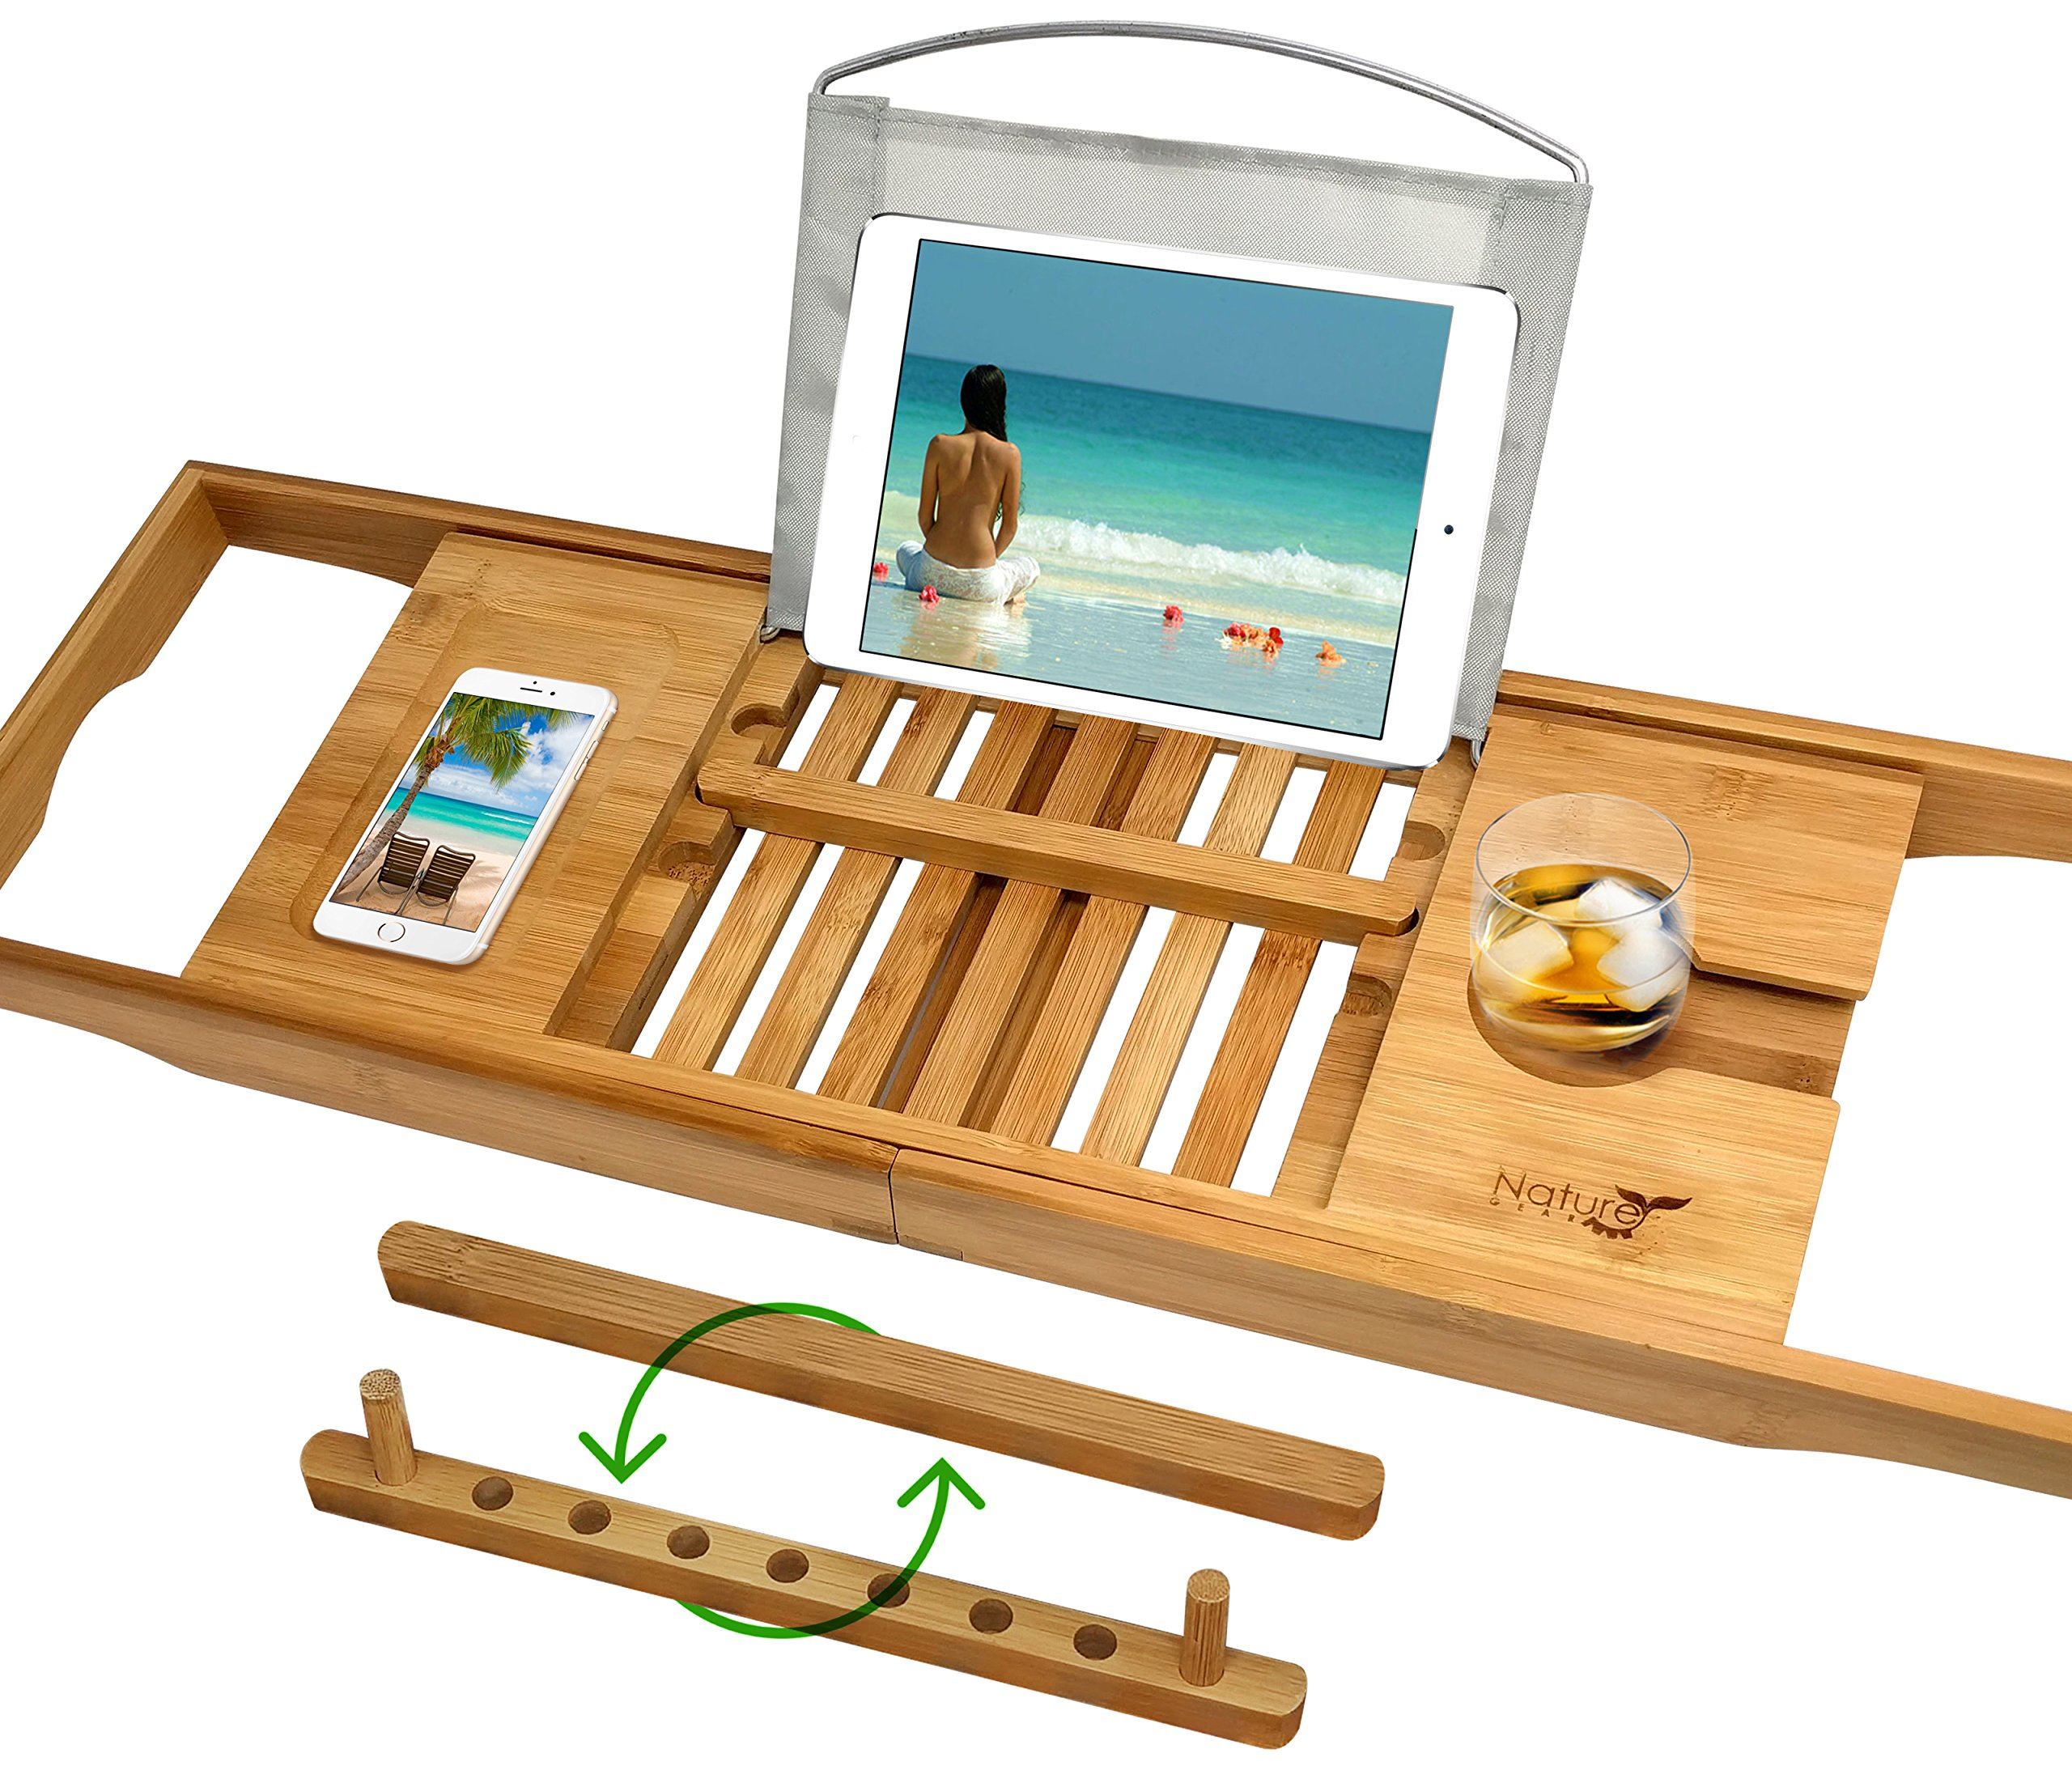 UPGRADED 2019 Bamboo Premium Luxury Bath Caddy - Holds Any Book, Magazine, Tablet or Smartphone - Bathtub Tray with Extending Arms